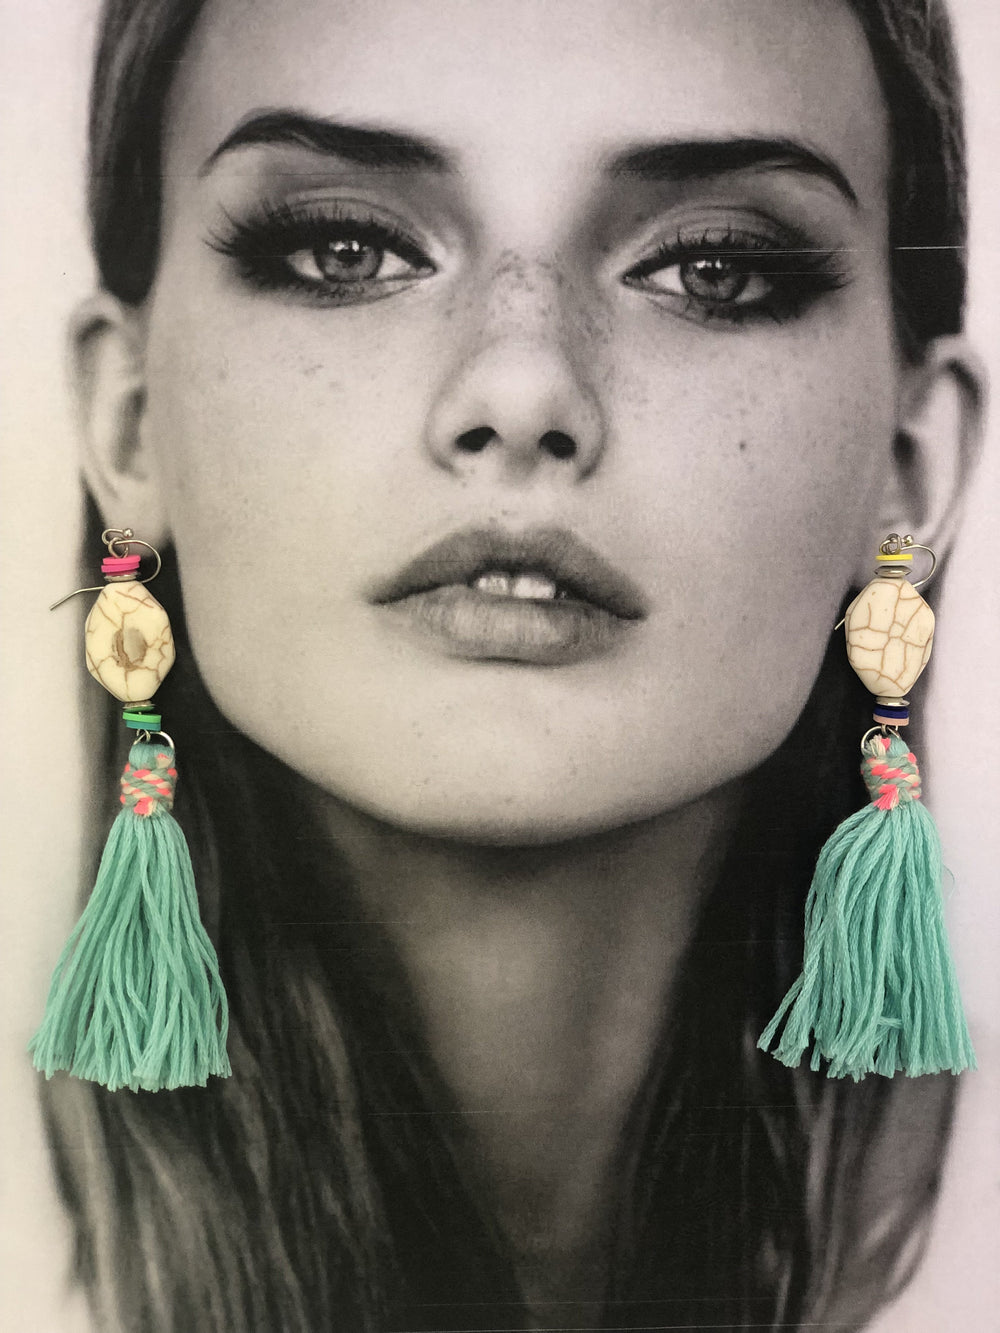 BOHO TASSEL EARRINGS IN TURQUOISE - Chic Le Frique